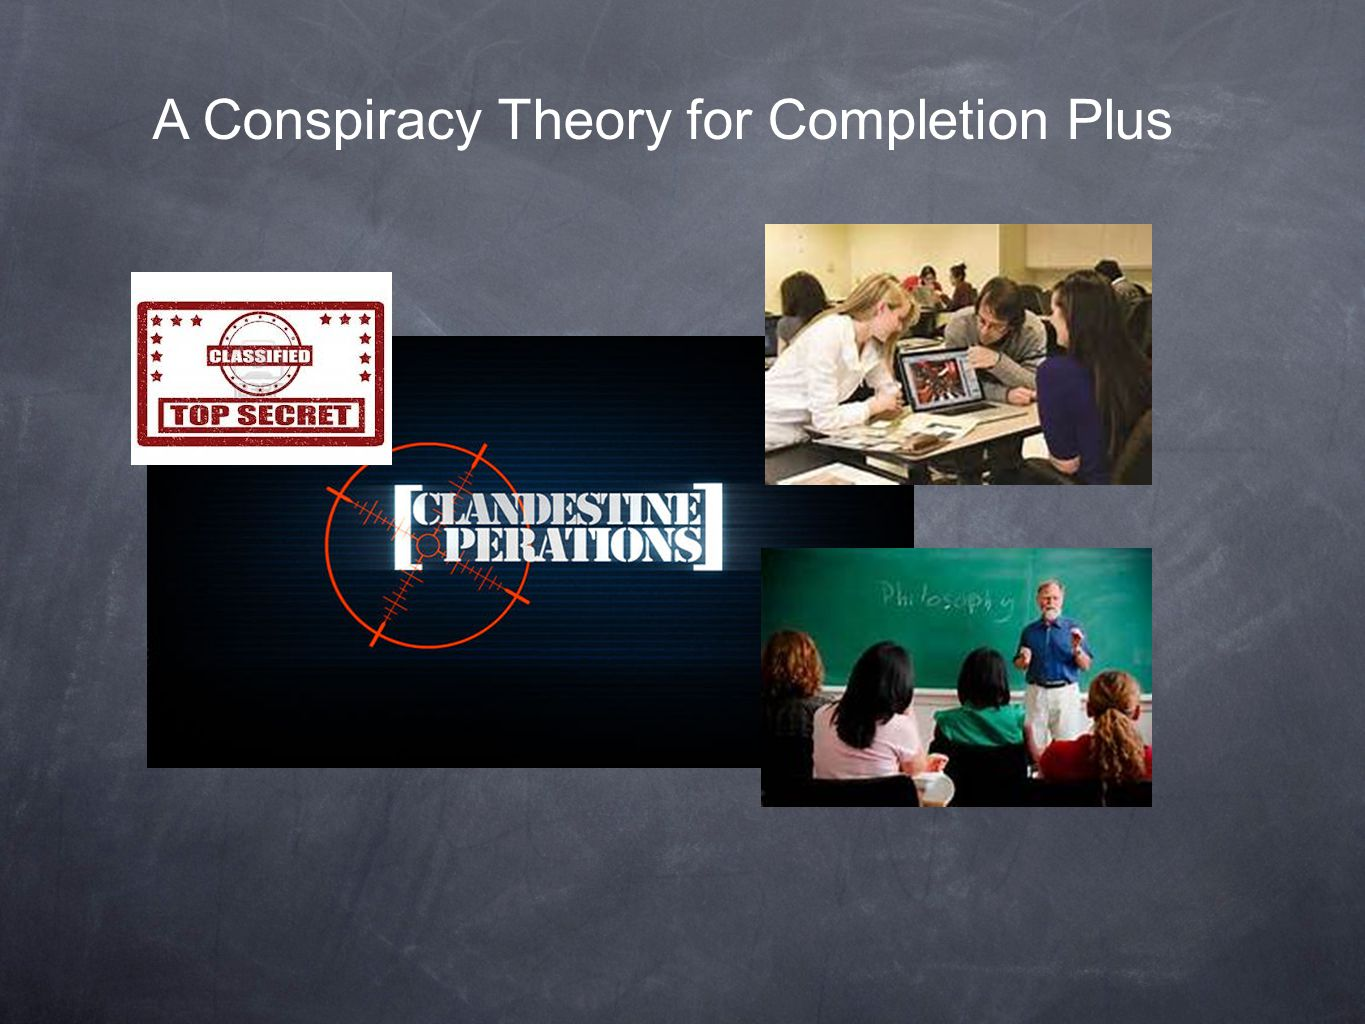 A Conspiracy Theory for Completion Plus